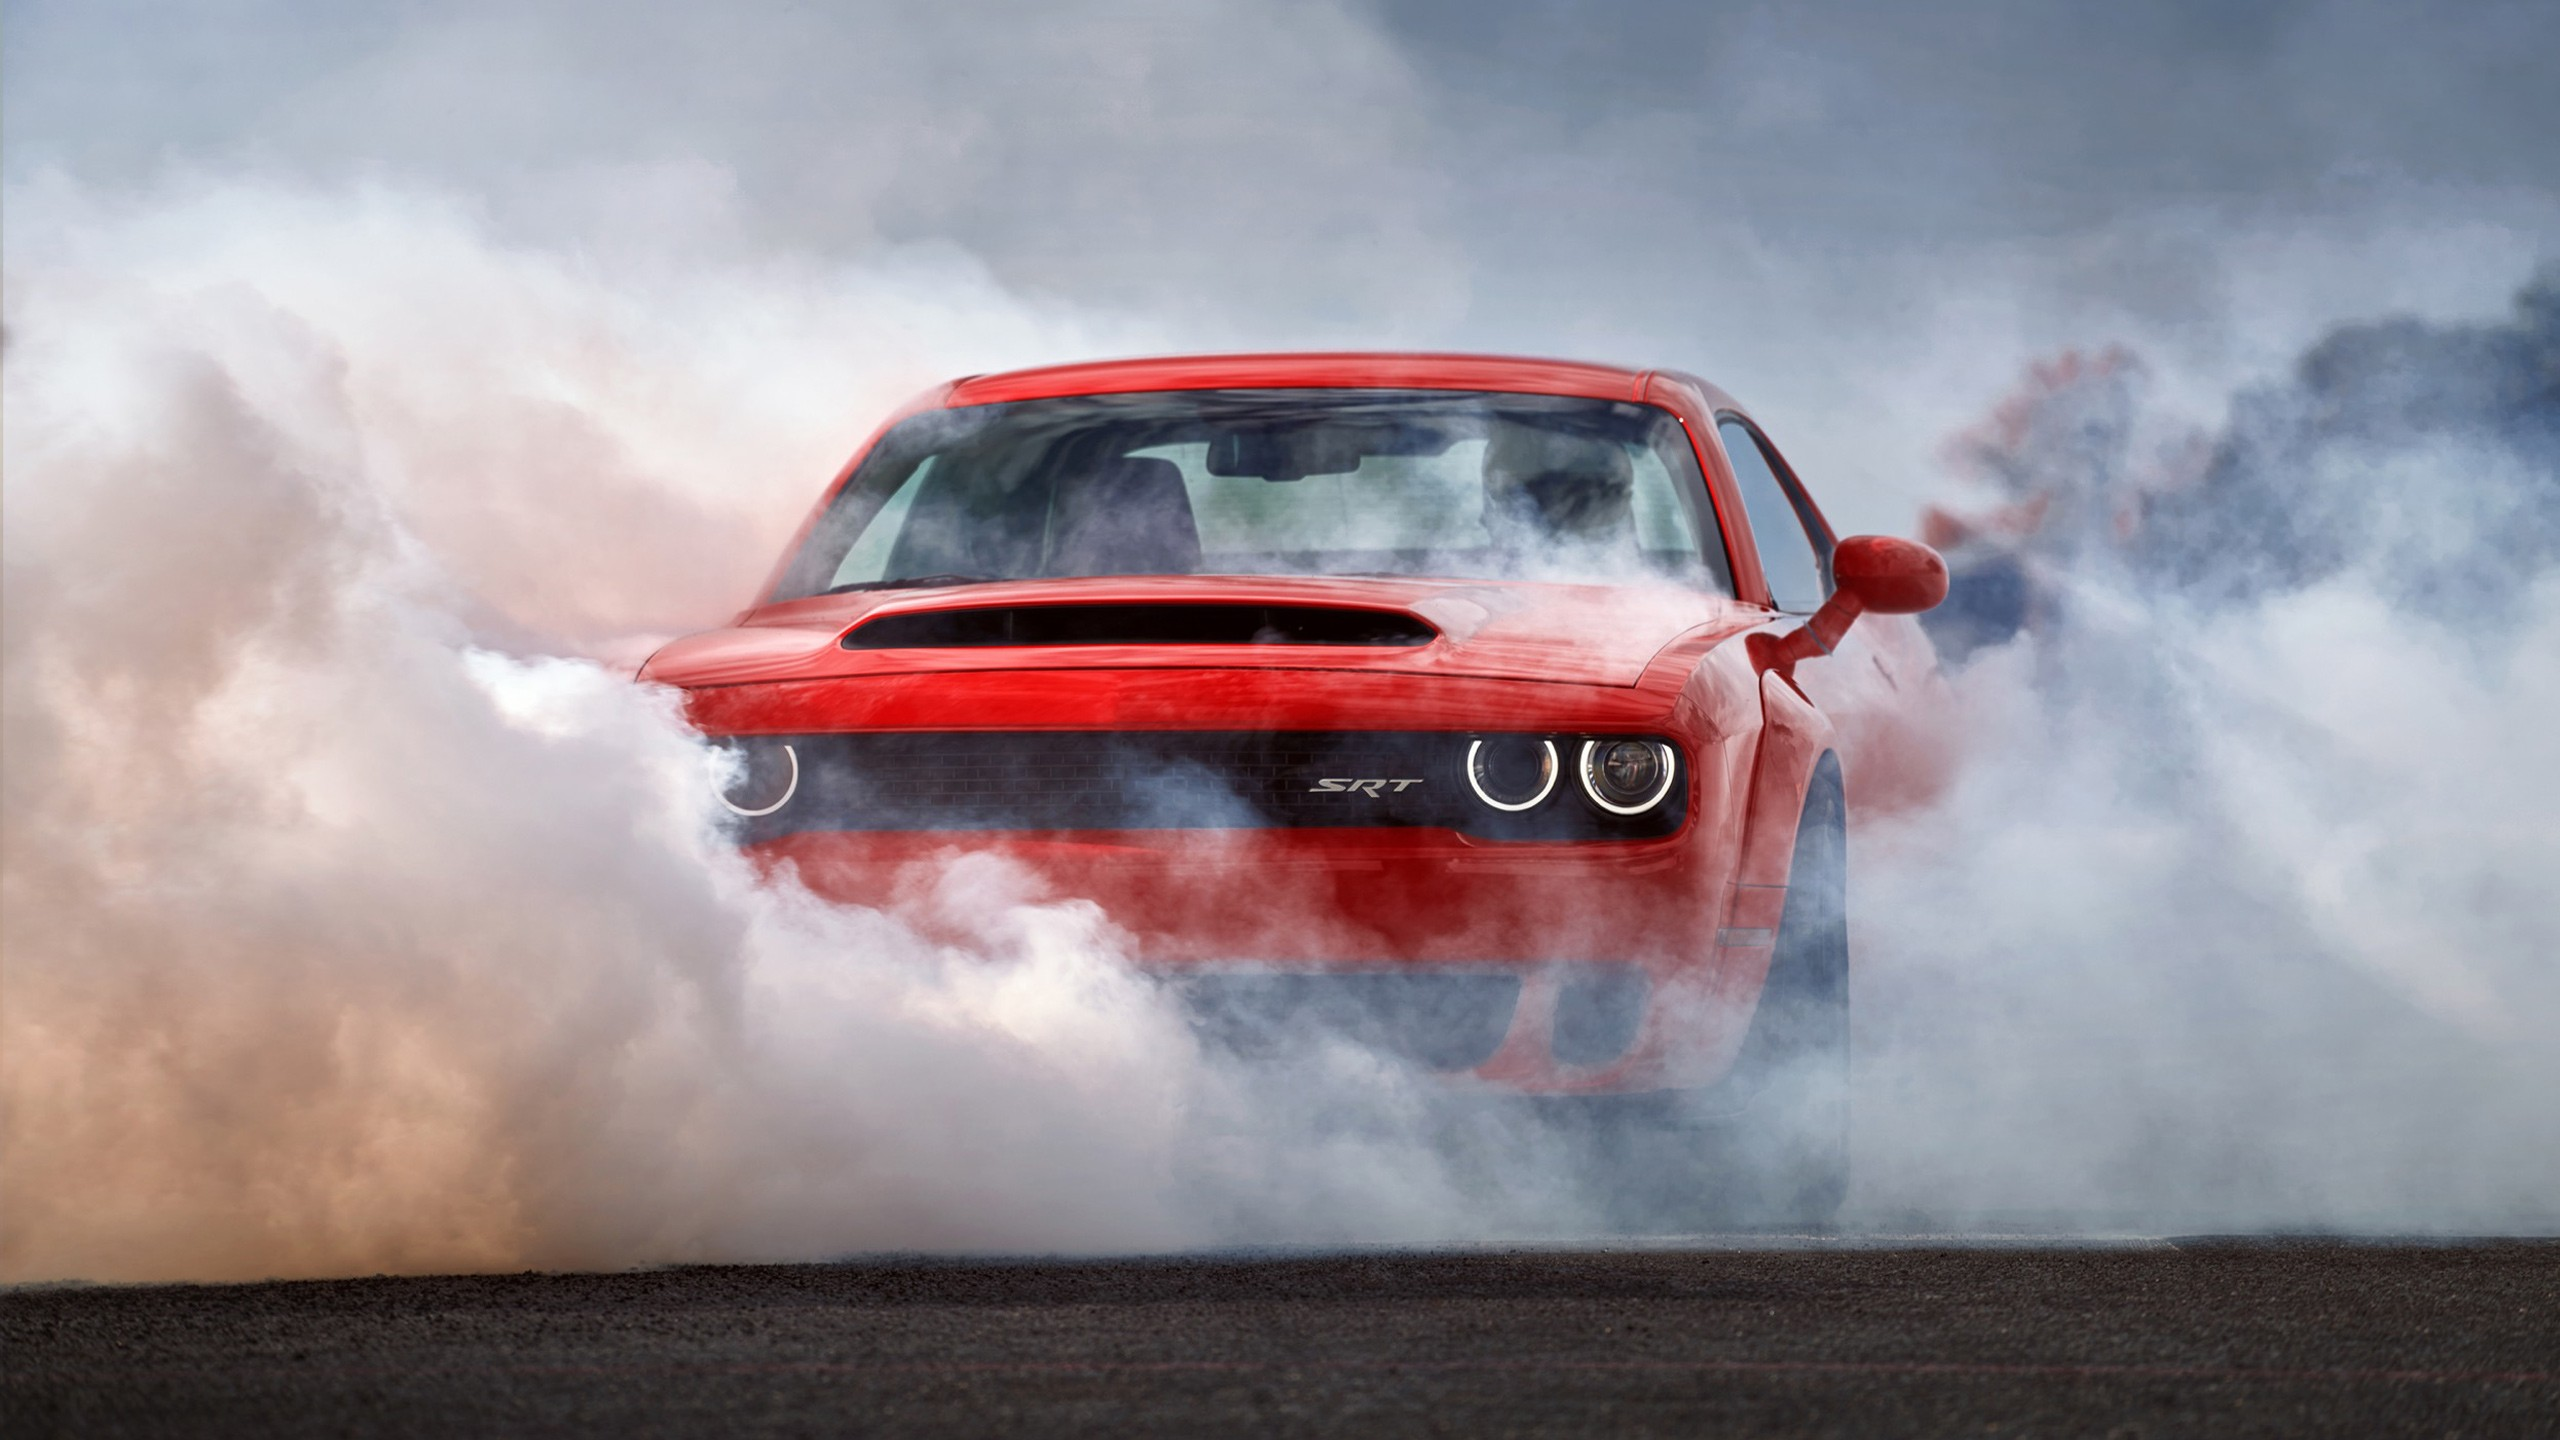 2018 Dodge Challenger Srt Demon Wallpaper Hd Car